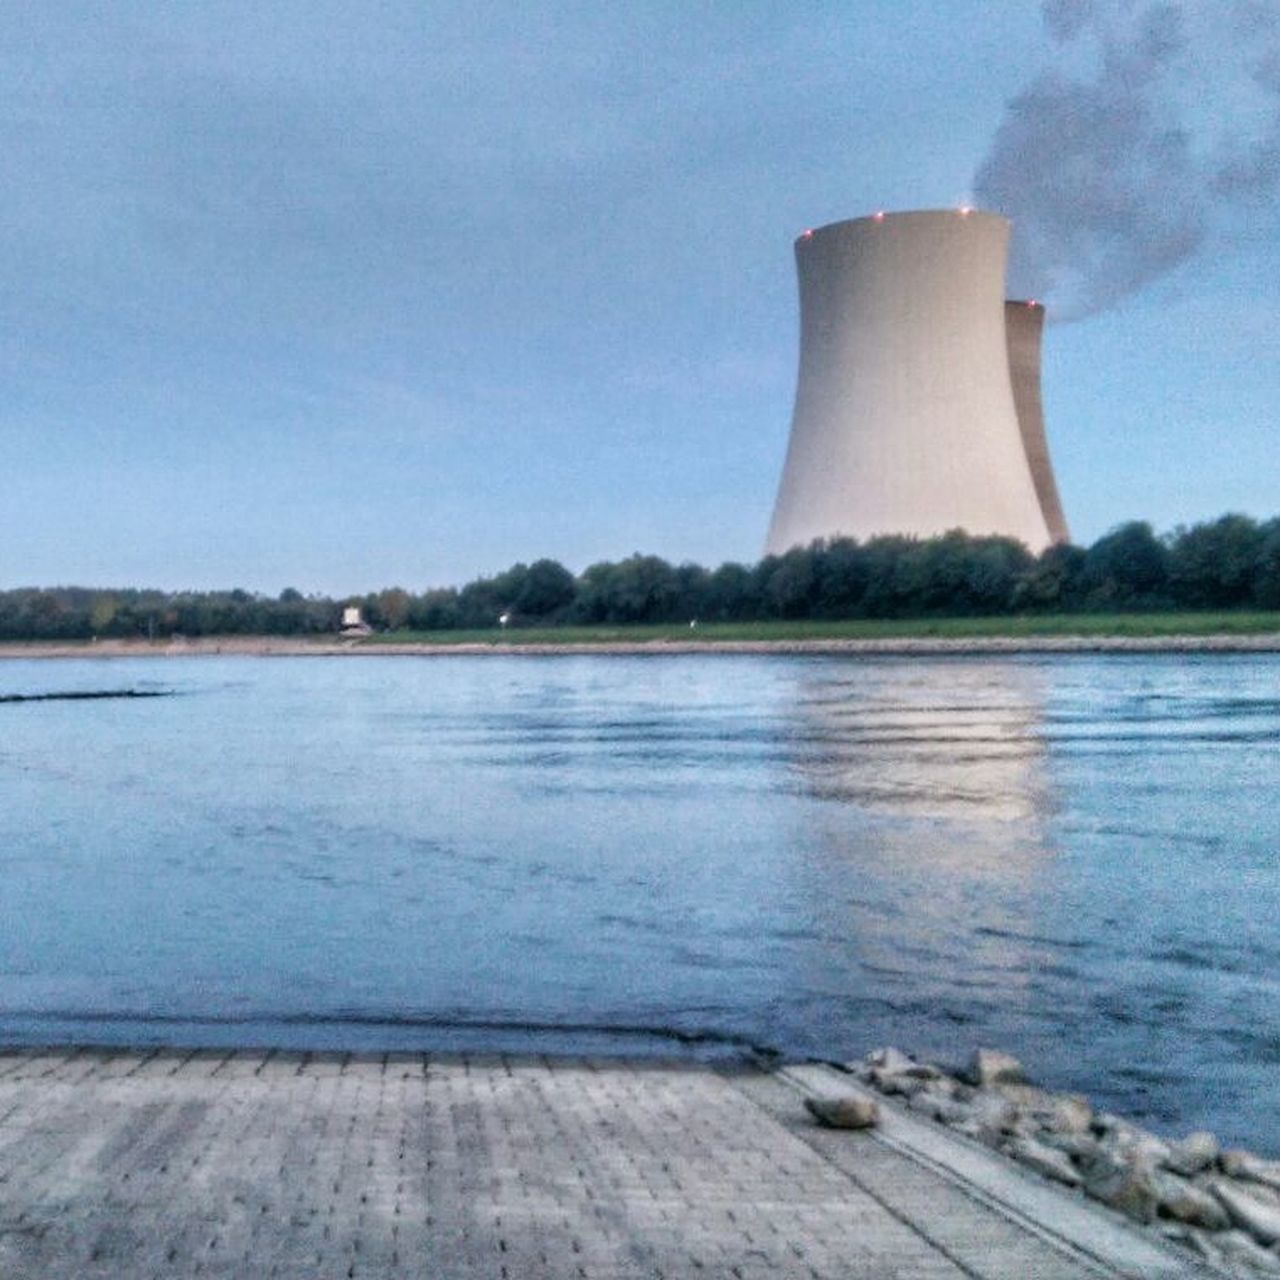 built structure, smoke stack, cooling tower, no people, outdoors, water, architecture, day, industry, lake, power station, building exterior, fuel and power generation, sky, tree, nature